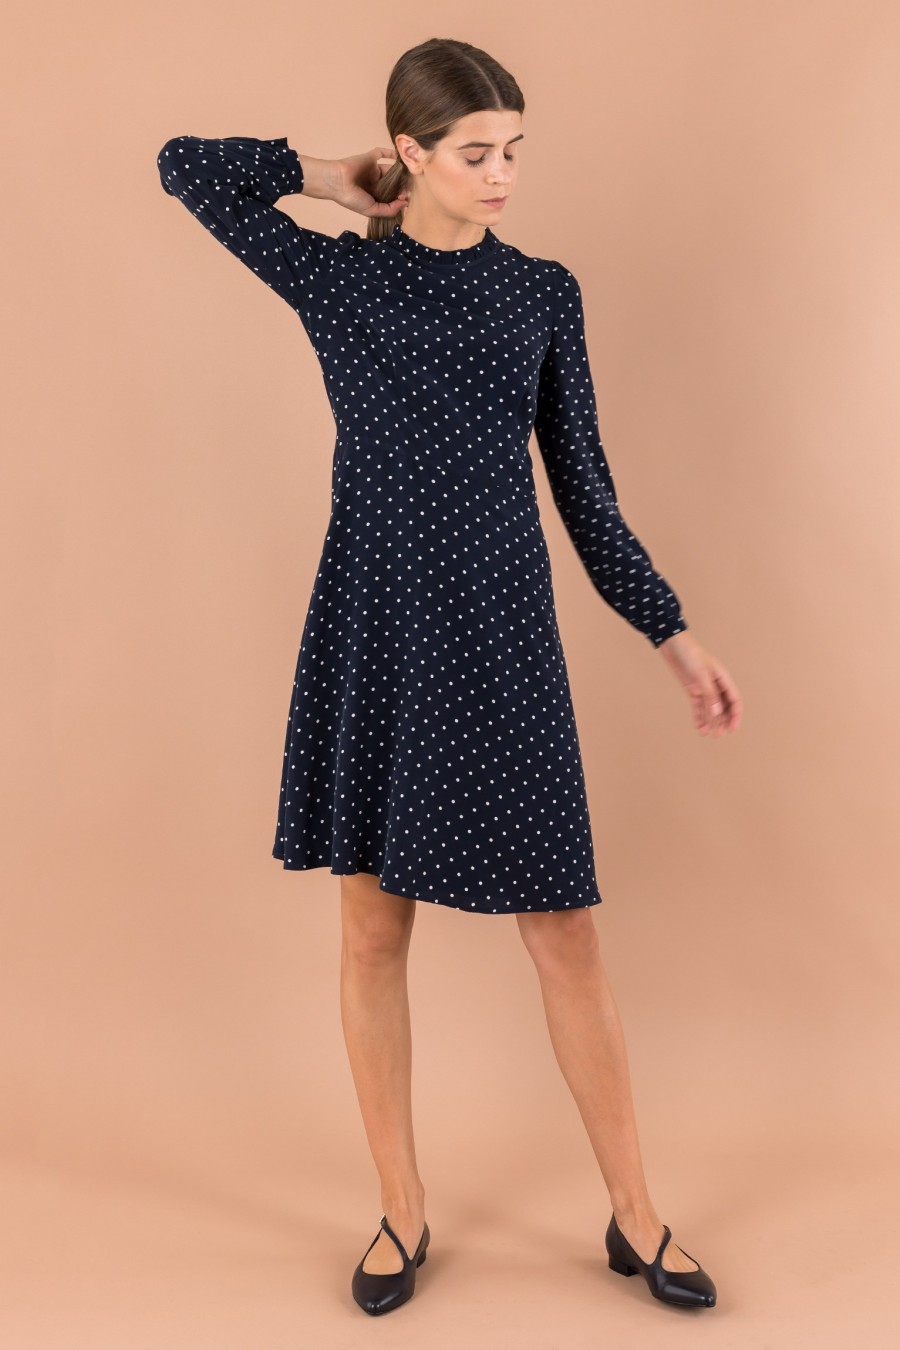 Blue dress with white polka dots